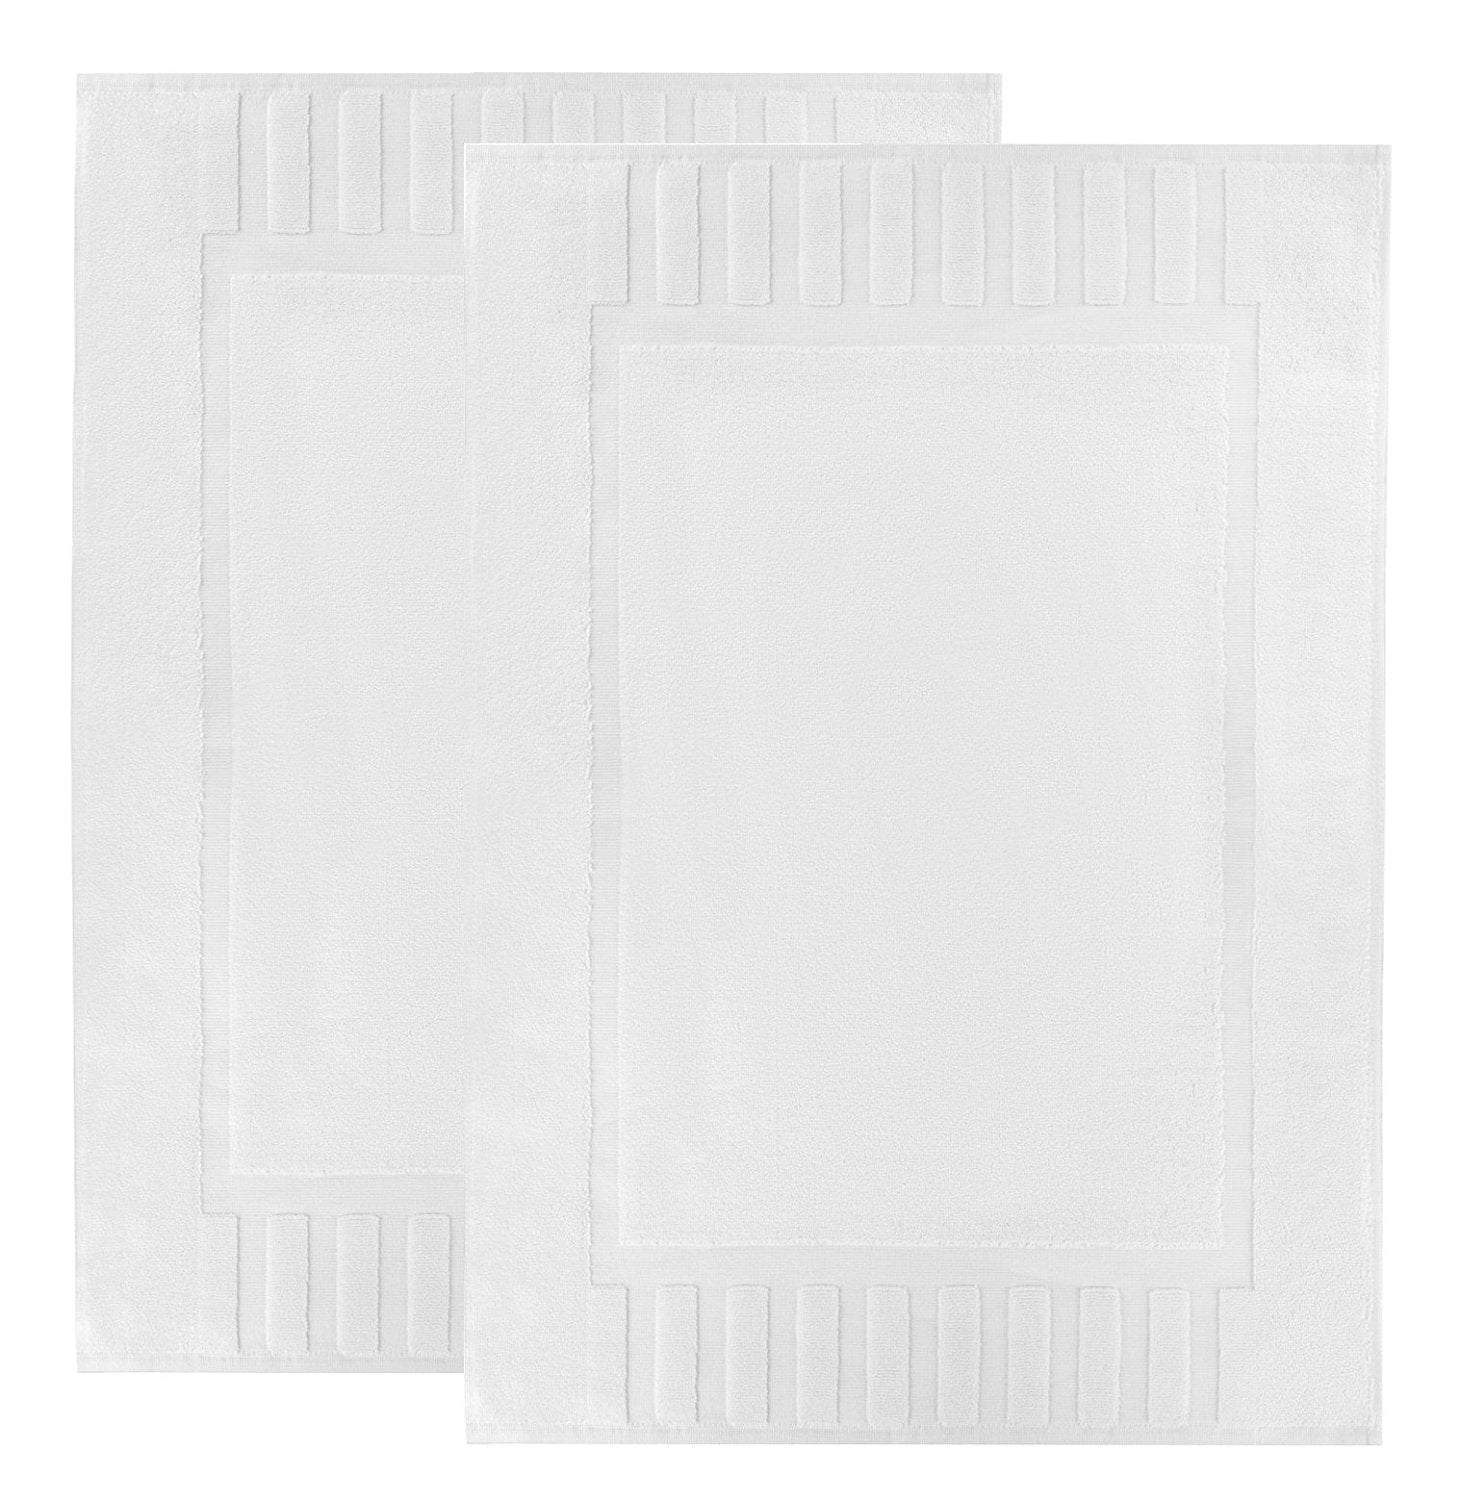 "Luxury Hotel and Spa 100% Cotton Washable Bath Mats, 2 Pack, 22""x34"", White, (Reversible Step Out Bath Mat Set)"